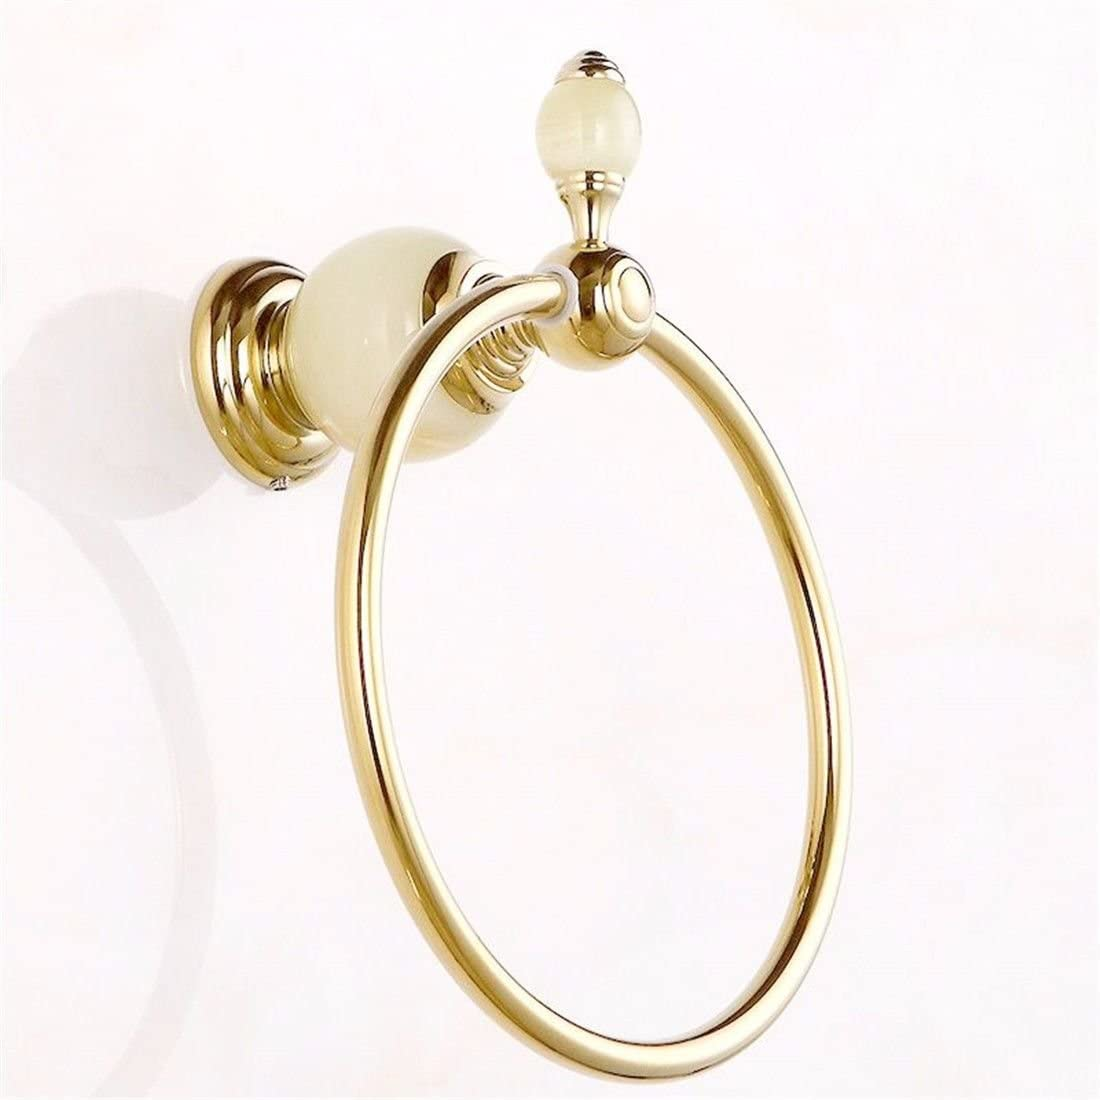 AiRobin-Continental Brass Jade Base Wall Mounted Towel Ring Bathroom Accessory